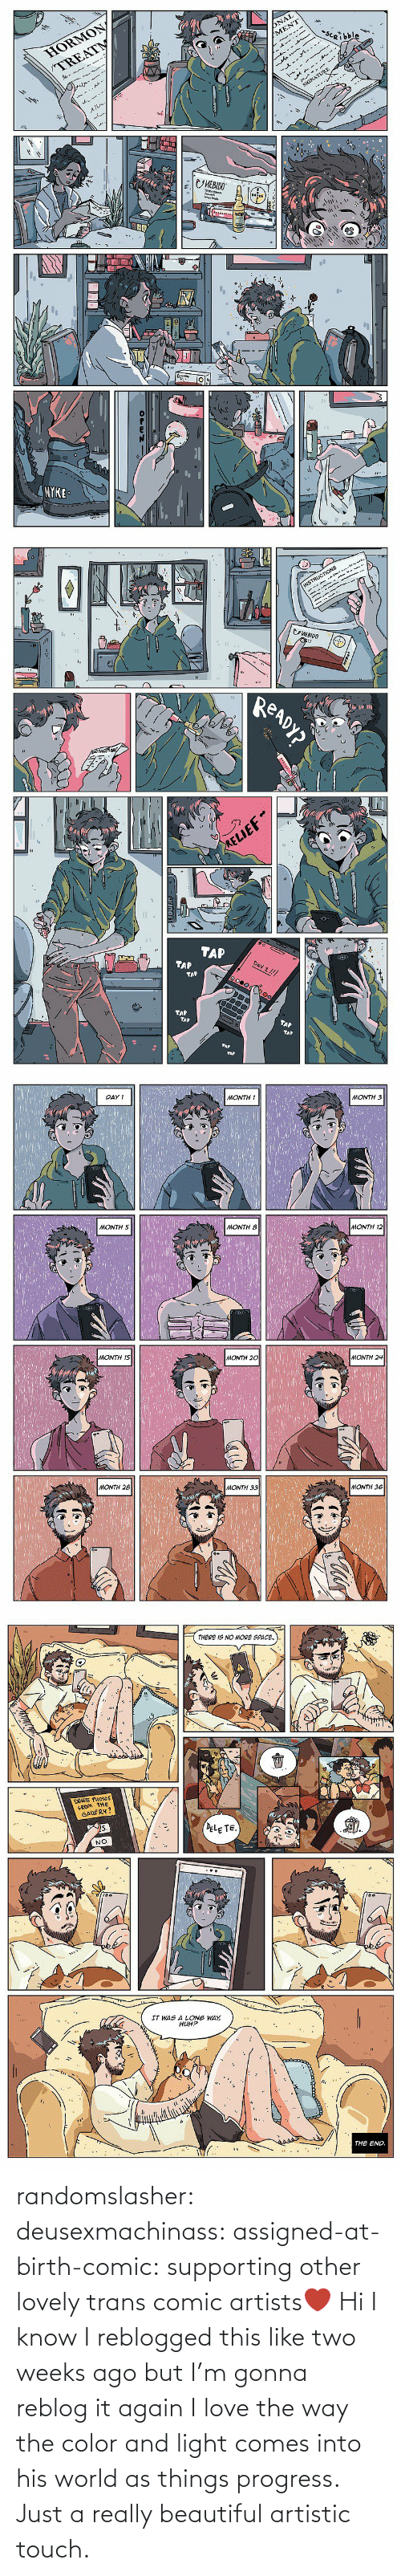 Artists: randomslasher: deusexmachinass:  assigned-at-birth-comic: supporting other lovely trans comic artists❤  Hi I know I reblogged this like two weeks ago but I'm gonna reblog it again  I love the way the color and light comes into his world as things progress. Just a really beautiful artistic touch.